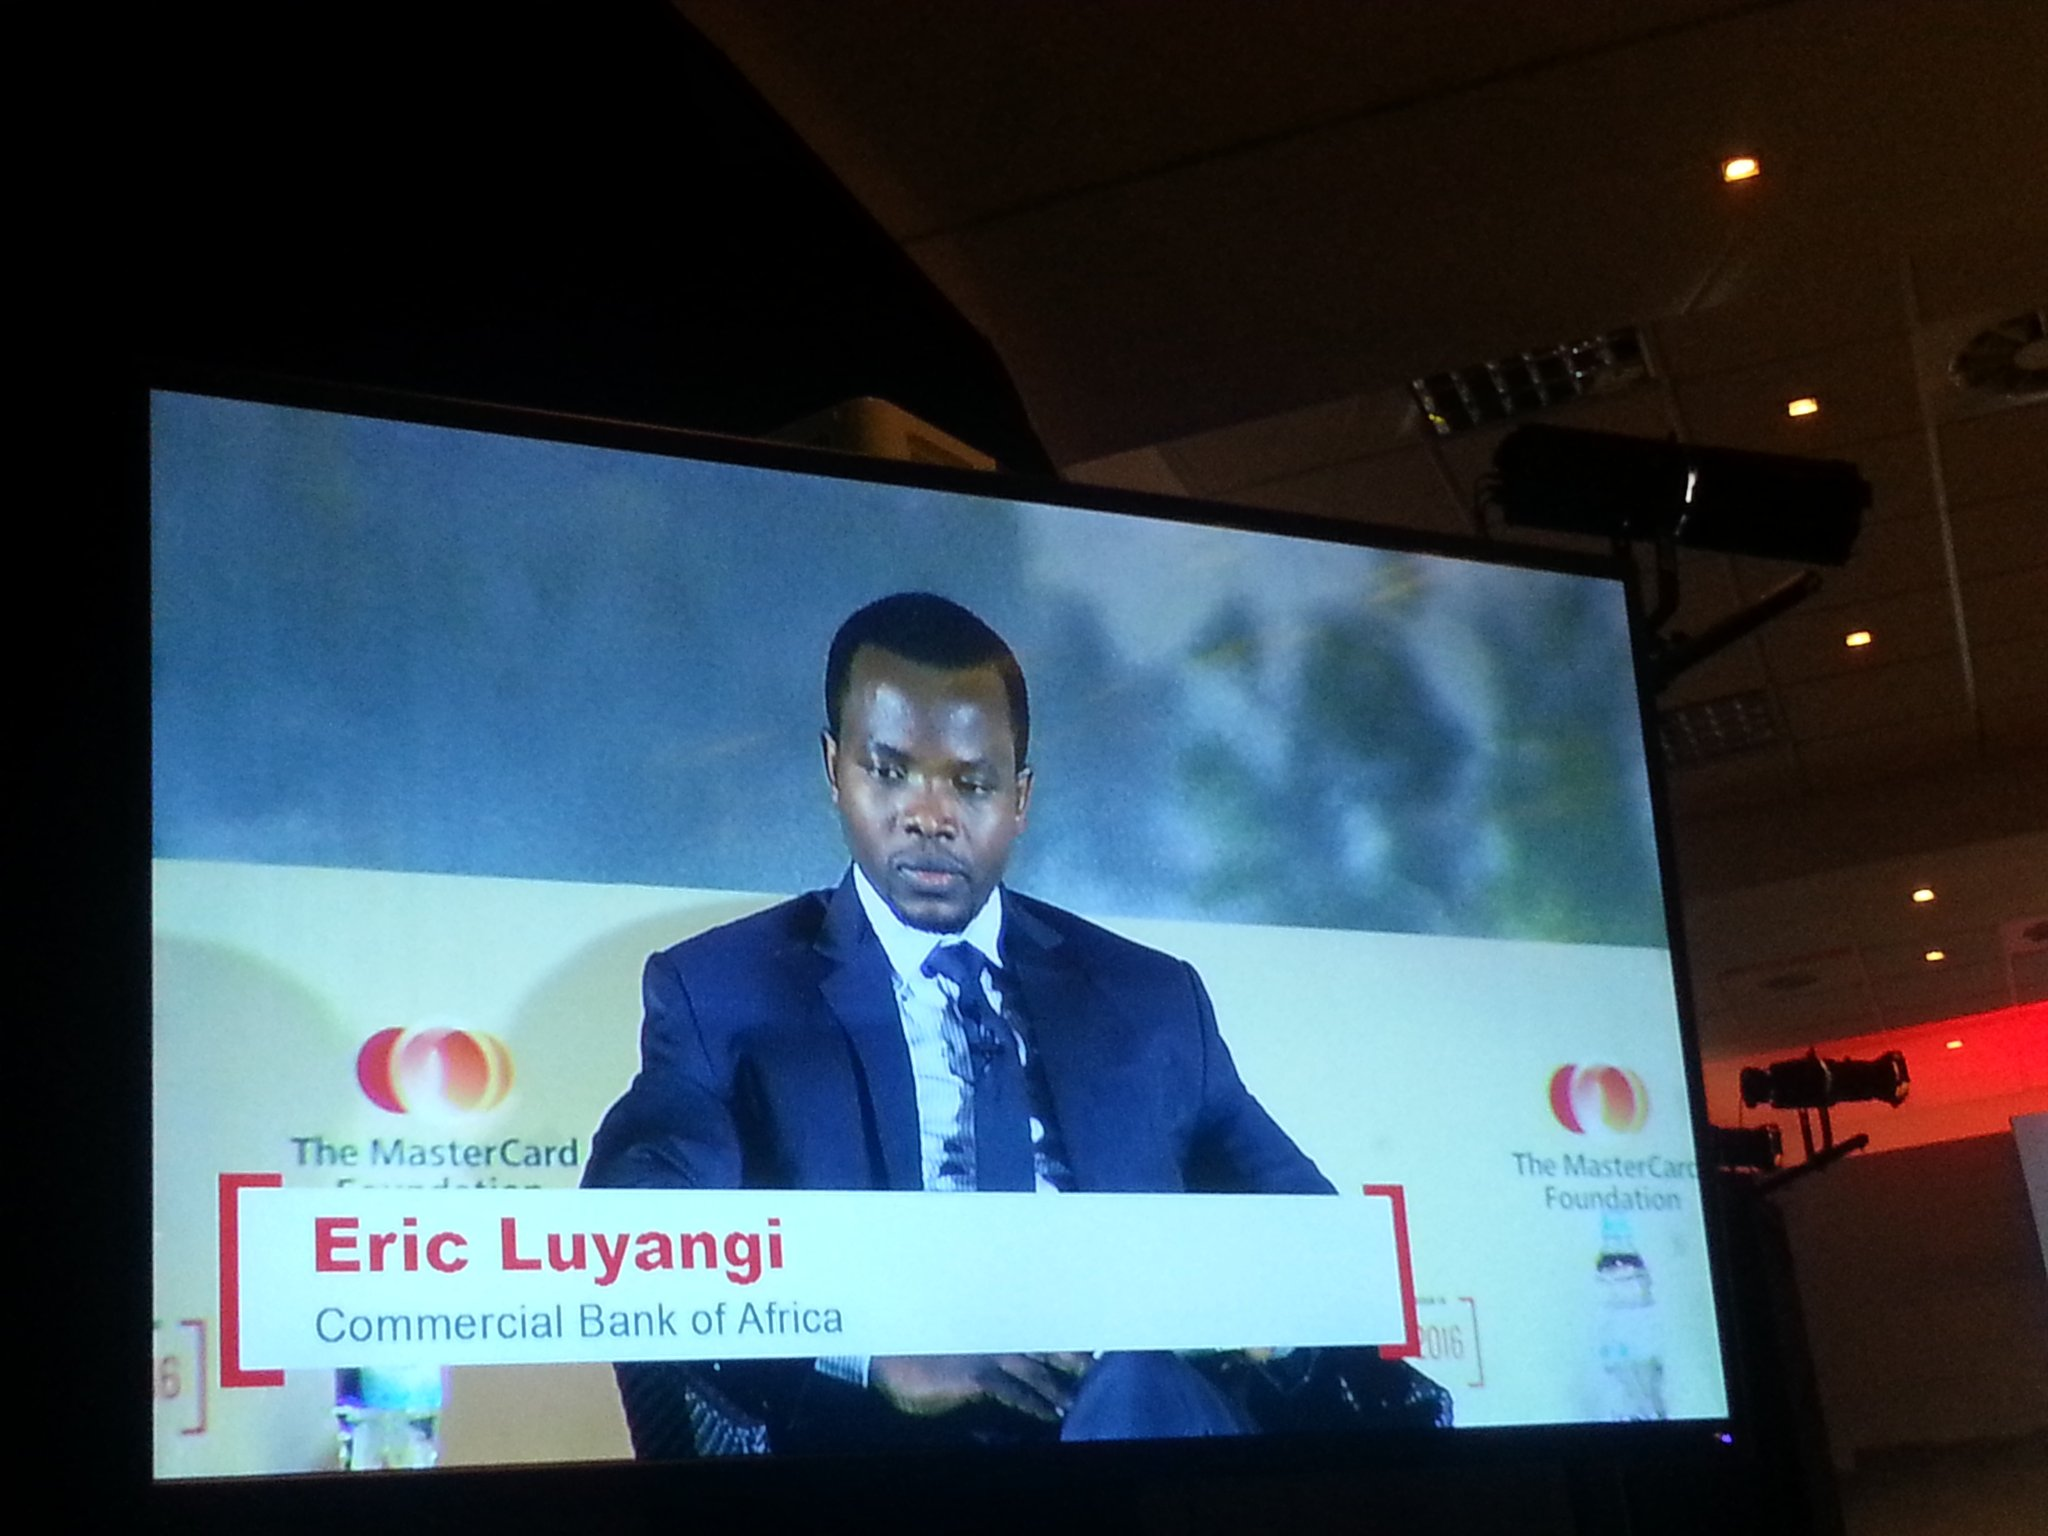 Commercial Bank of Africa (#Tanzania)'s Eric Luyangi talks about M-Power #SoFI2016 @MastercardFdn https://t.co/lrjjOfCCyT